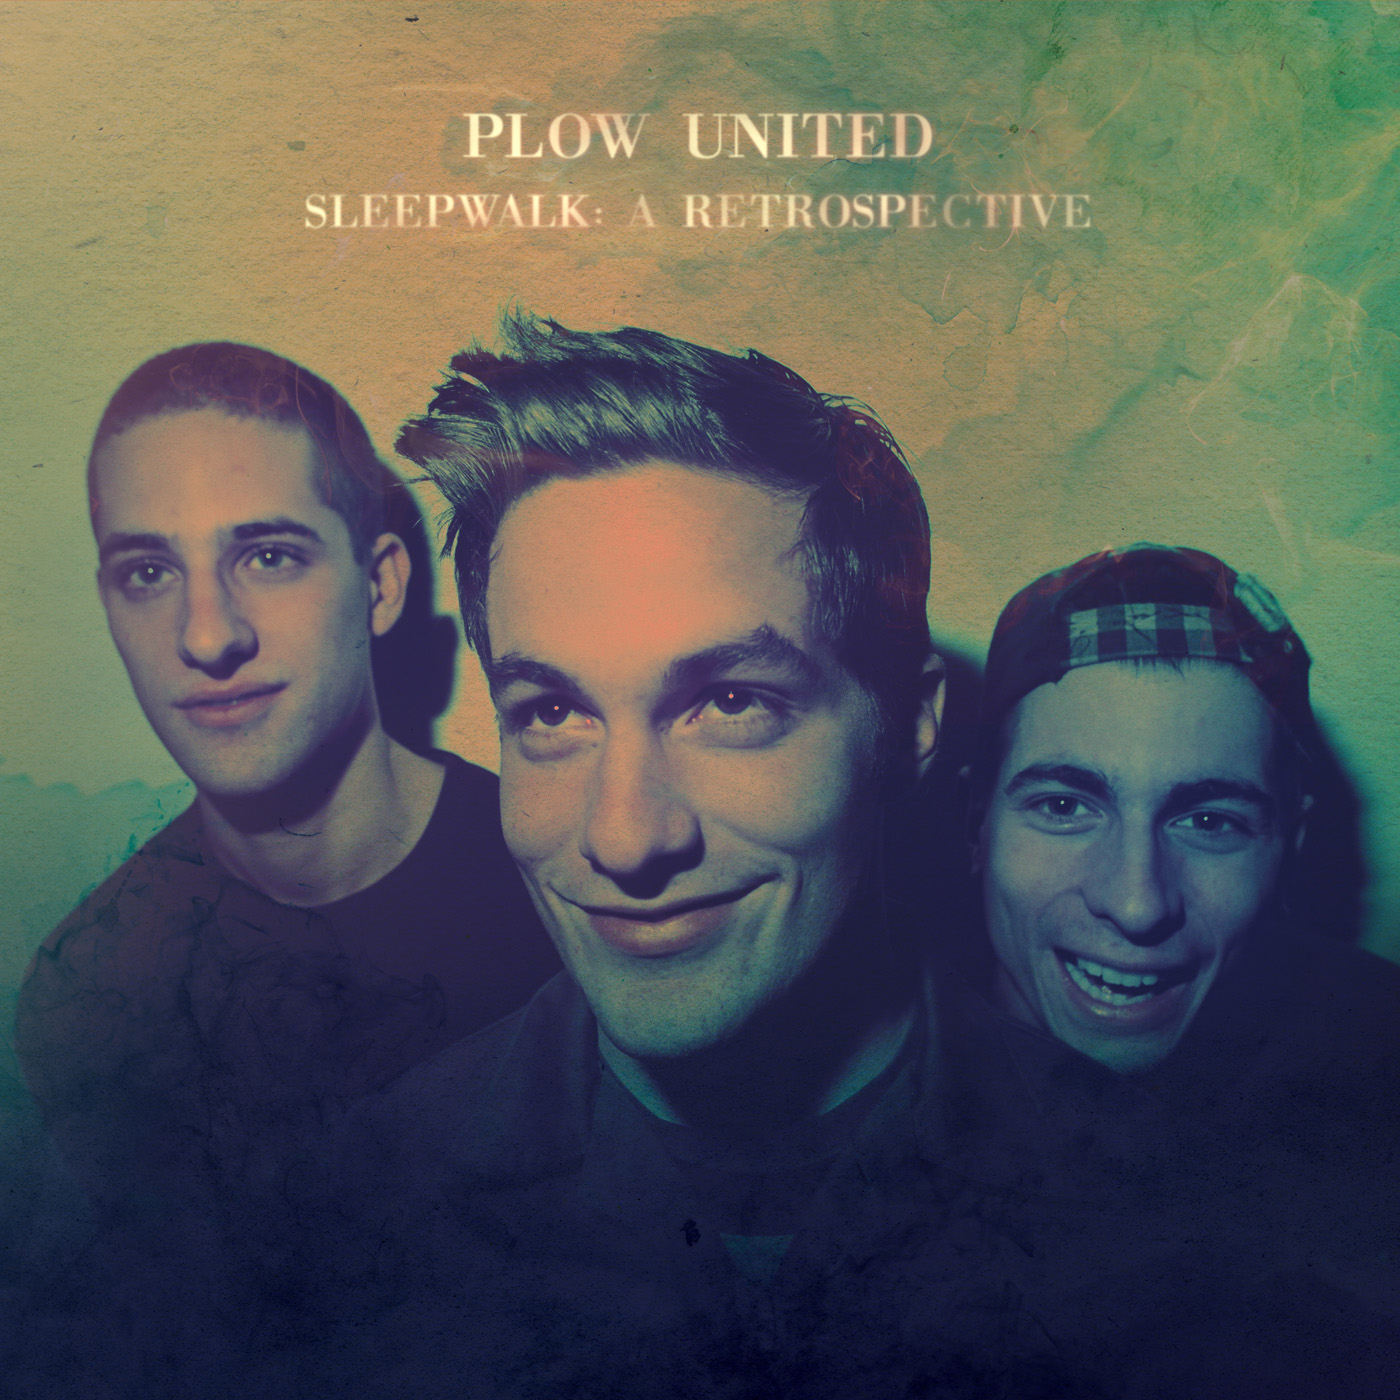 Plow United - Sleepwalk: A Retrospective CD